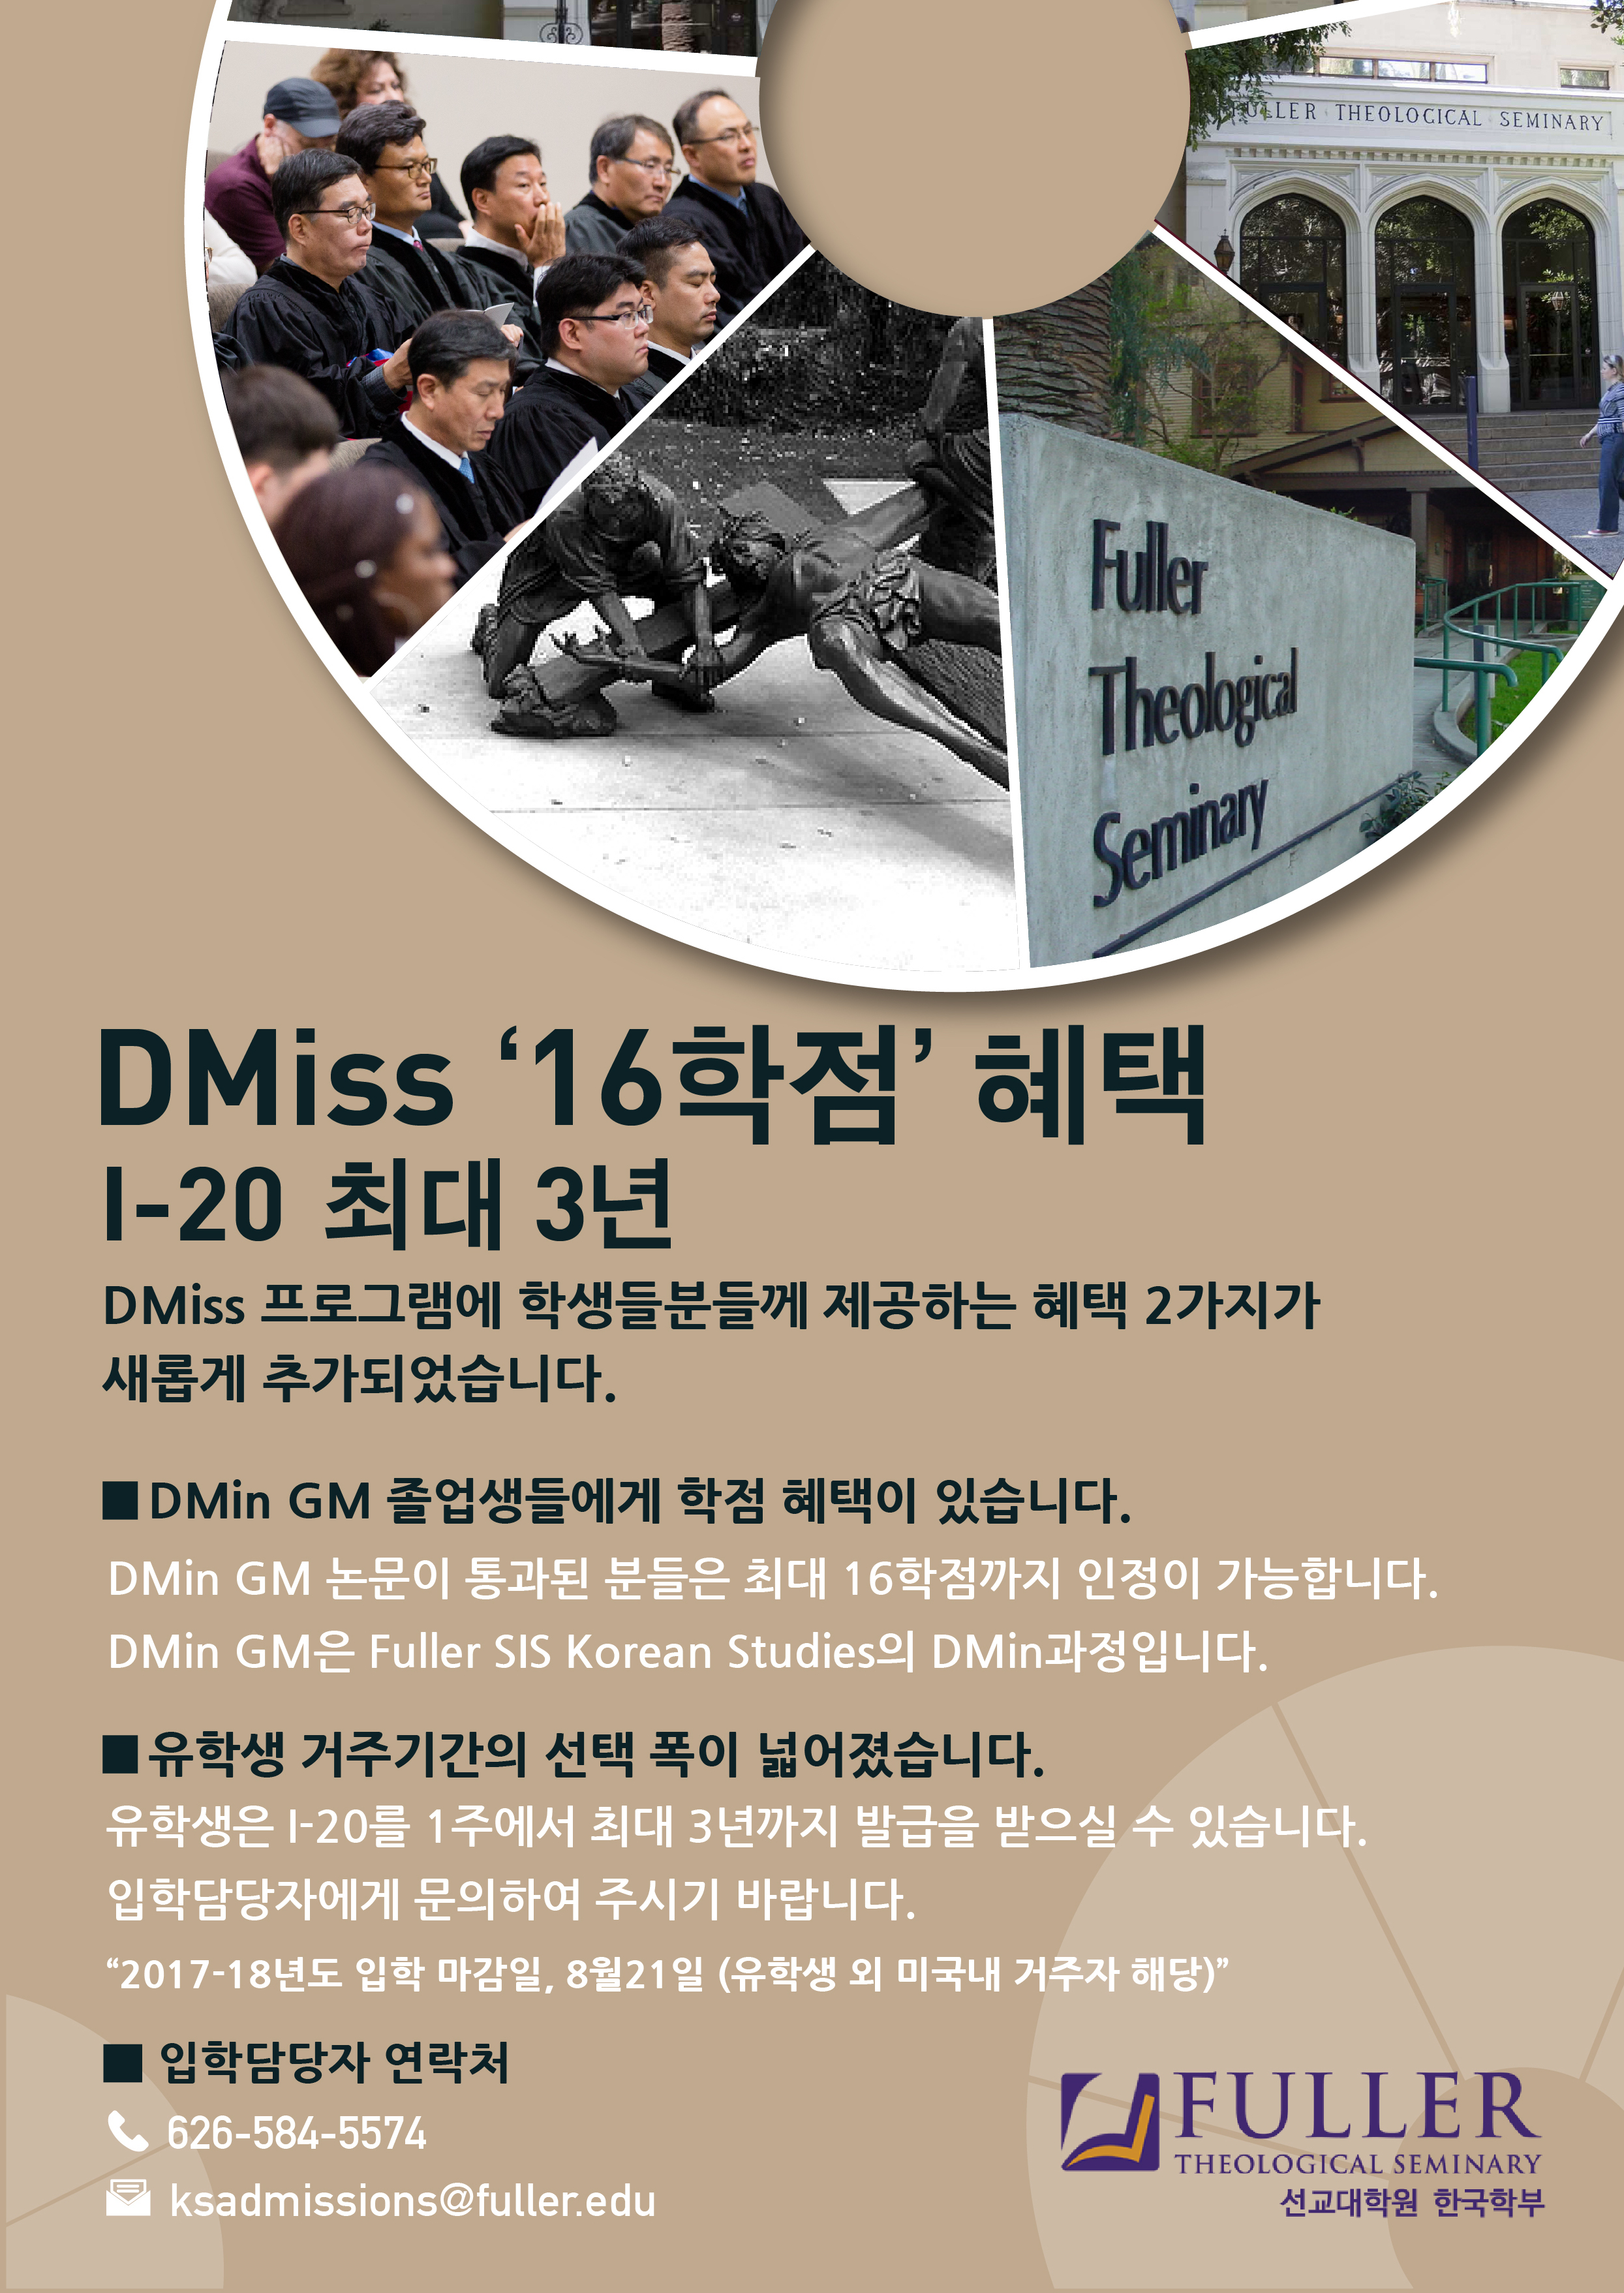 poster DMiss 16 credit I-20 3 year.jpg